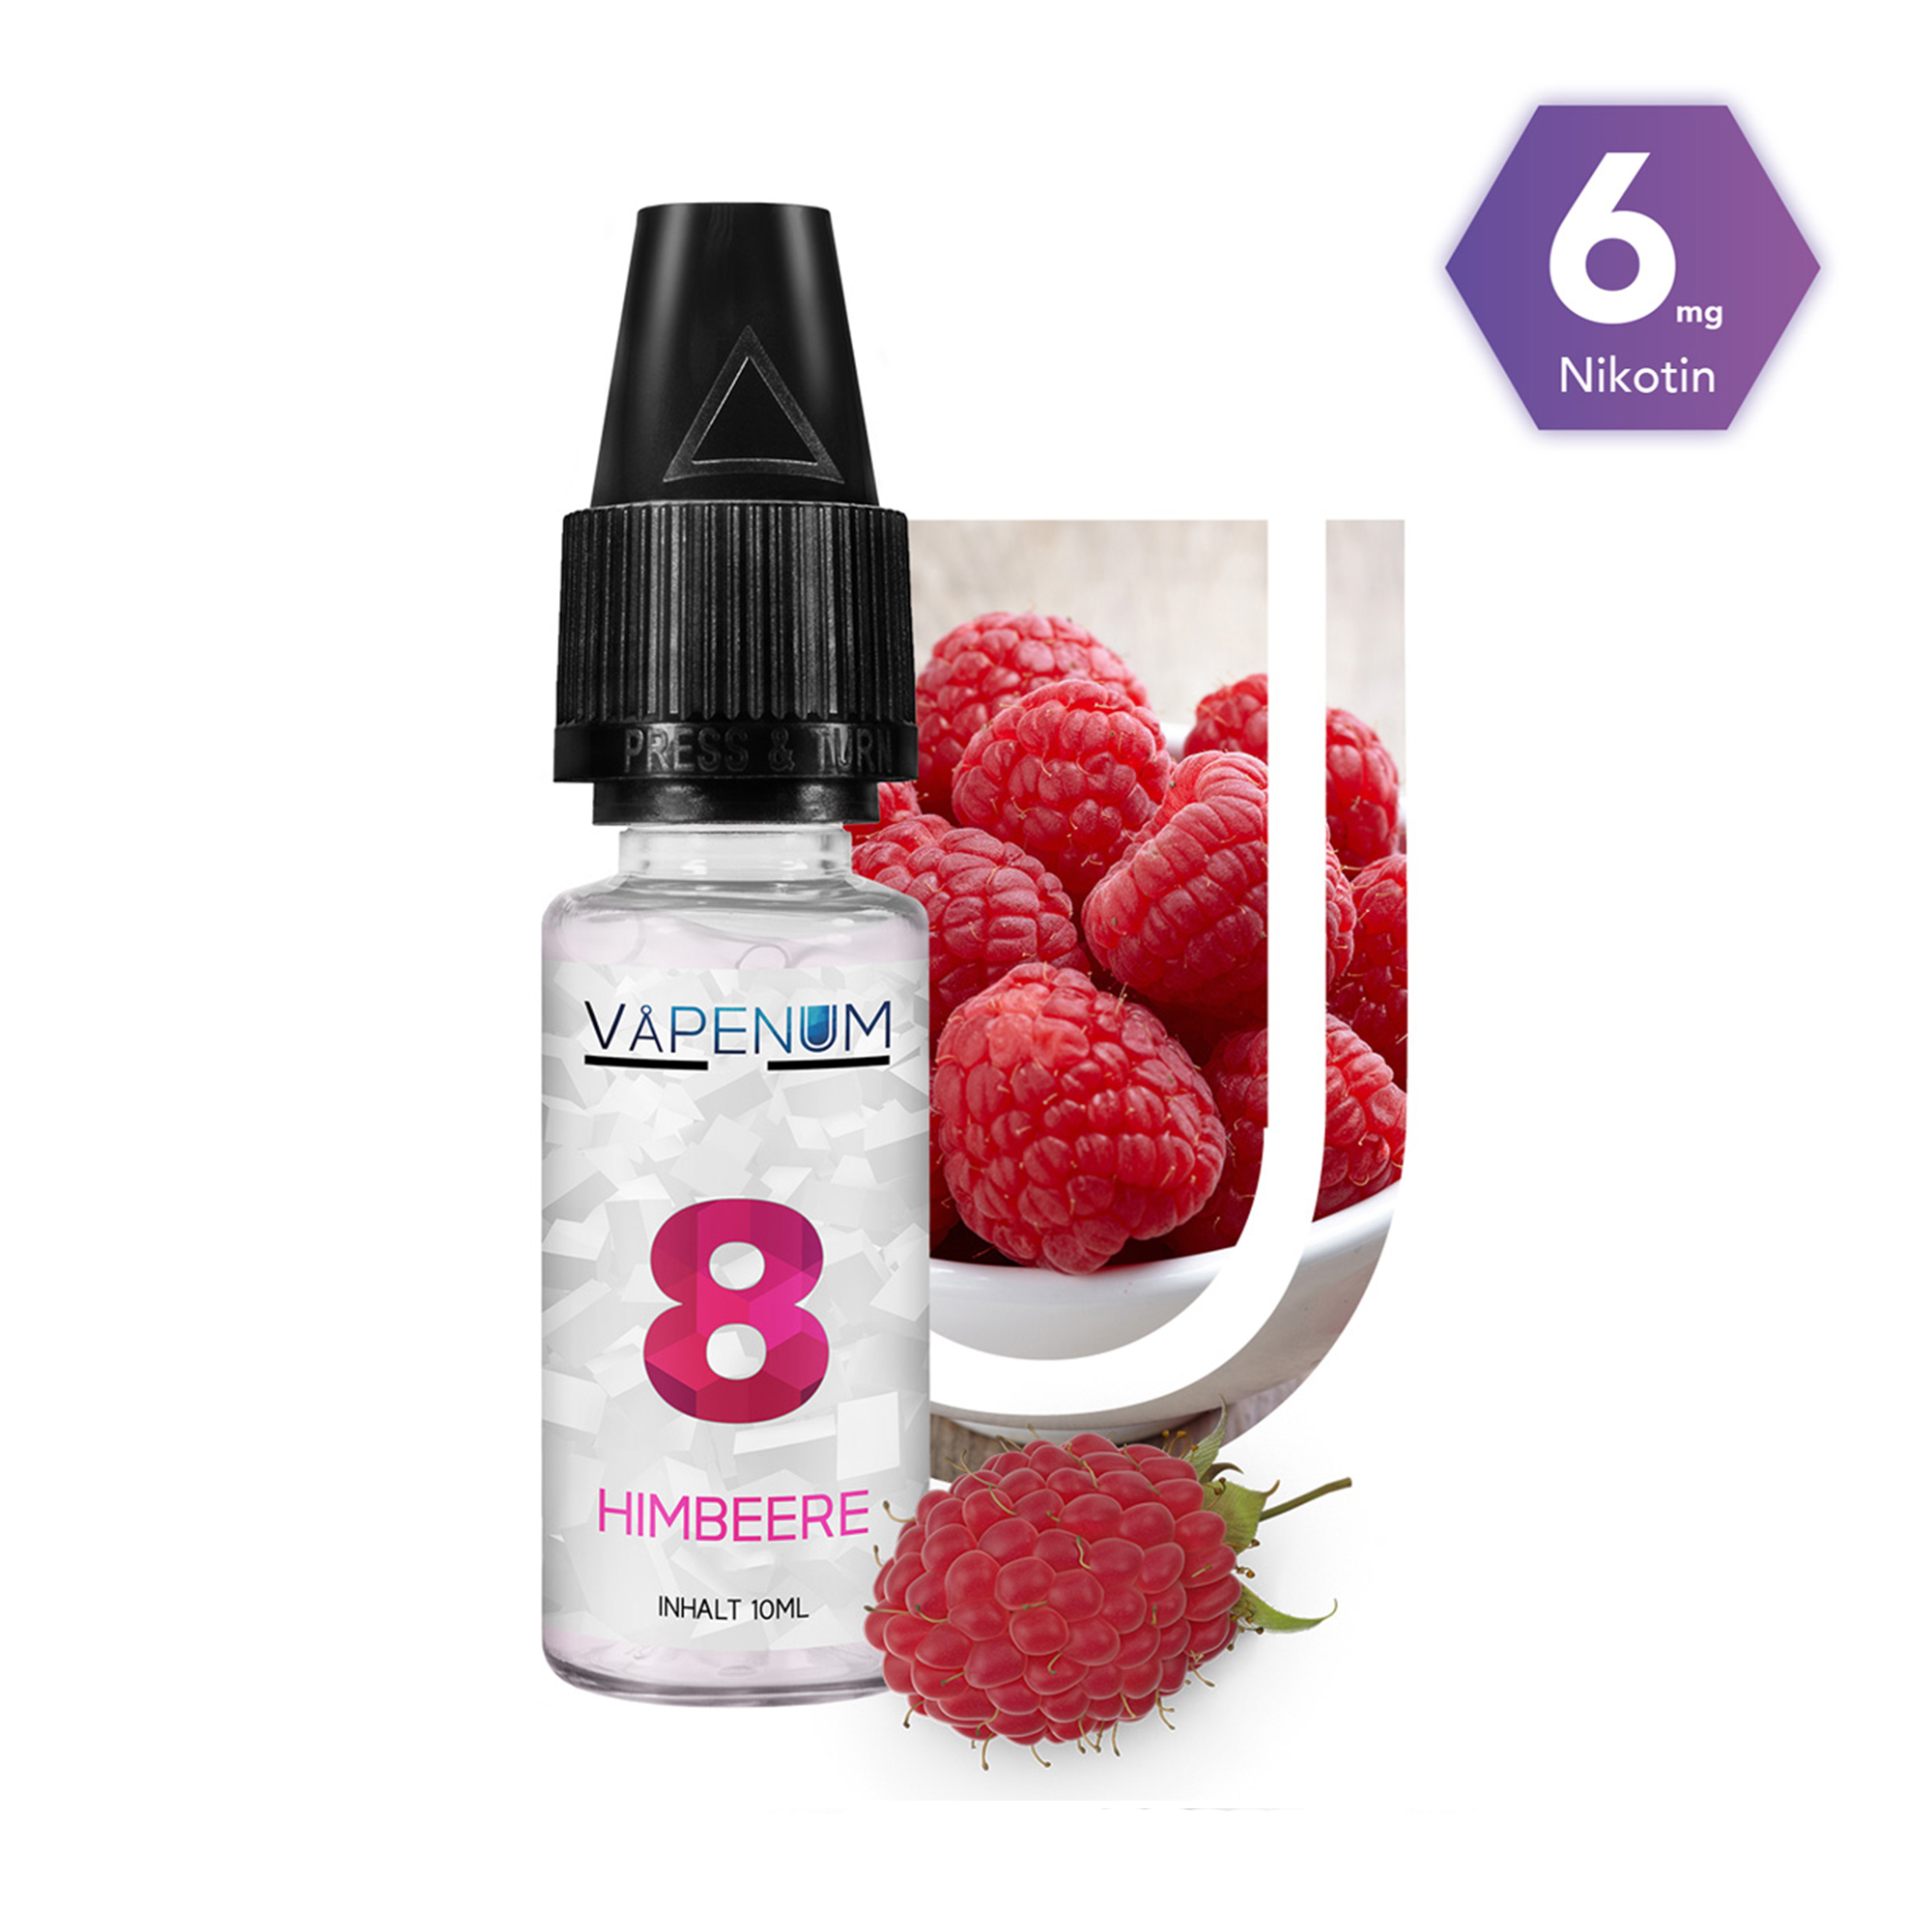 8 - Himbeere Liquid by Vapenum 6mg